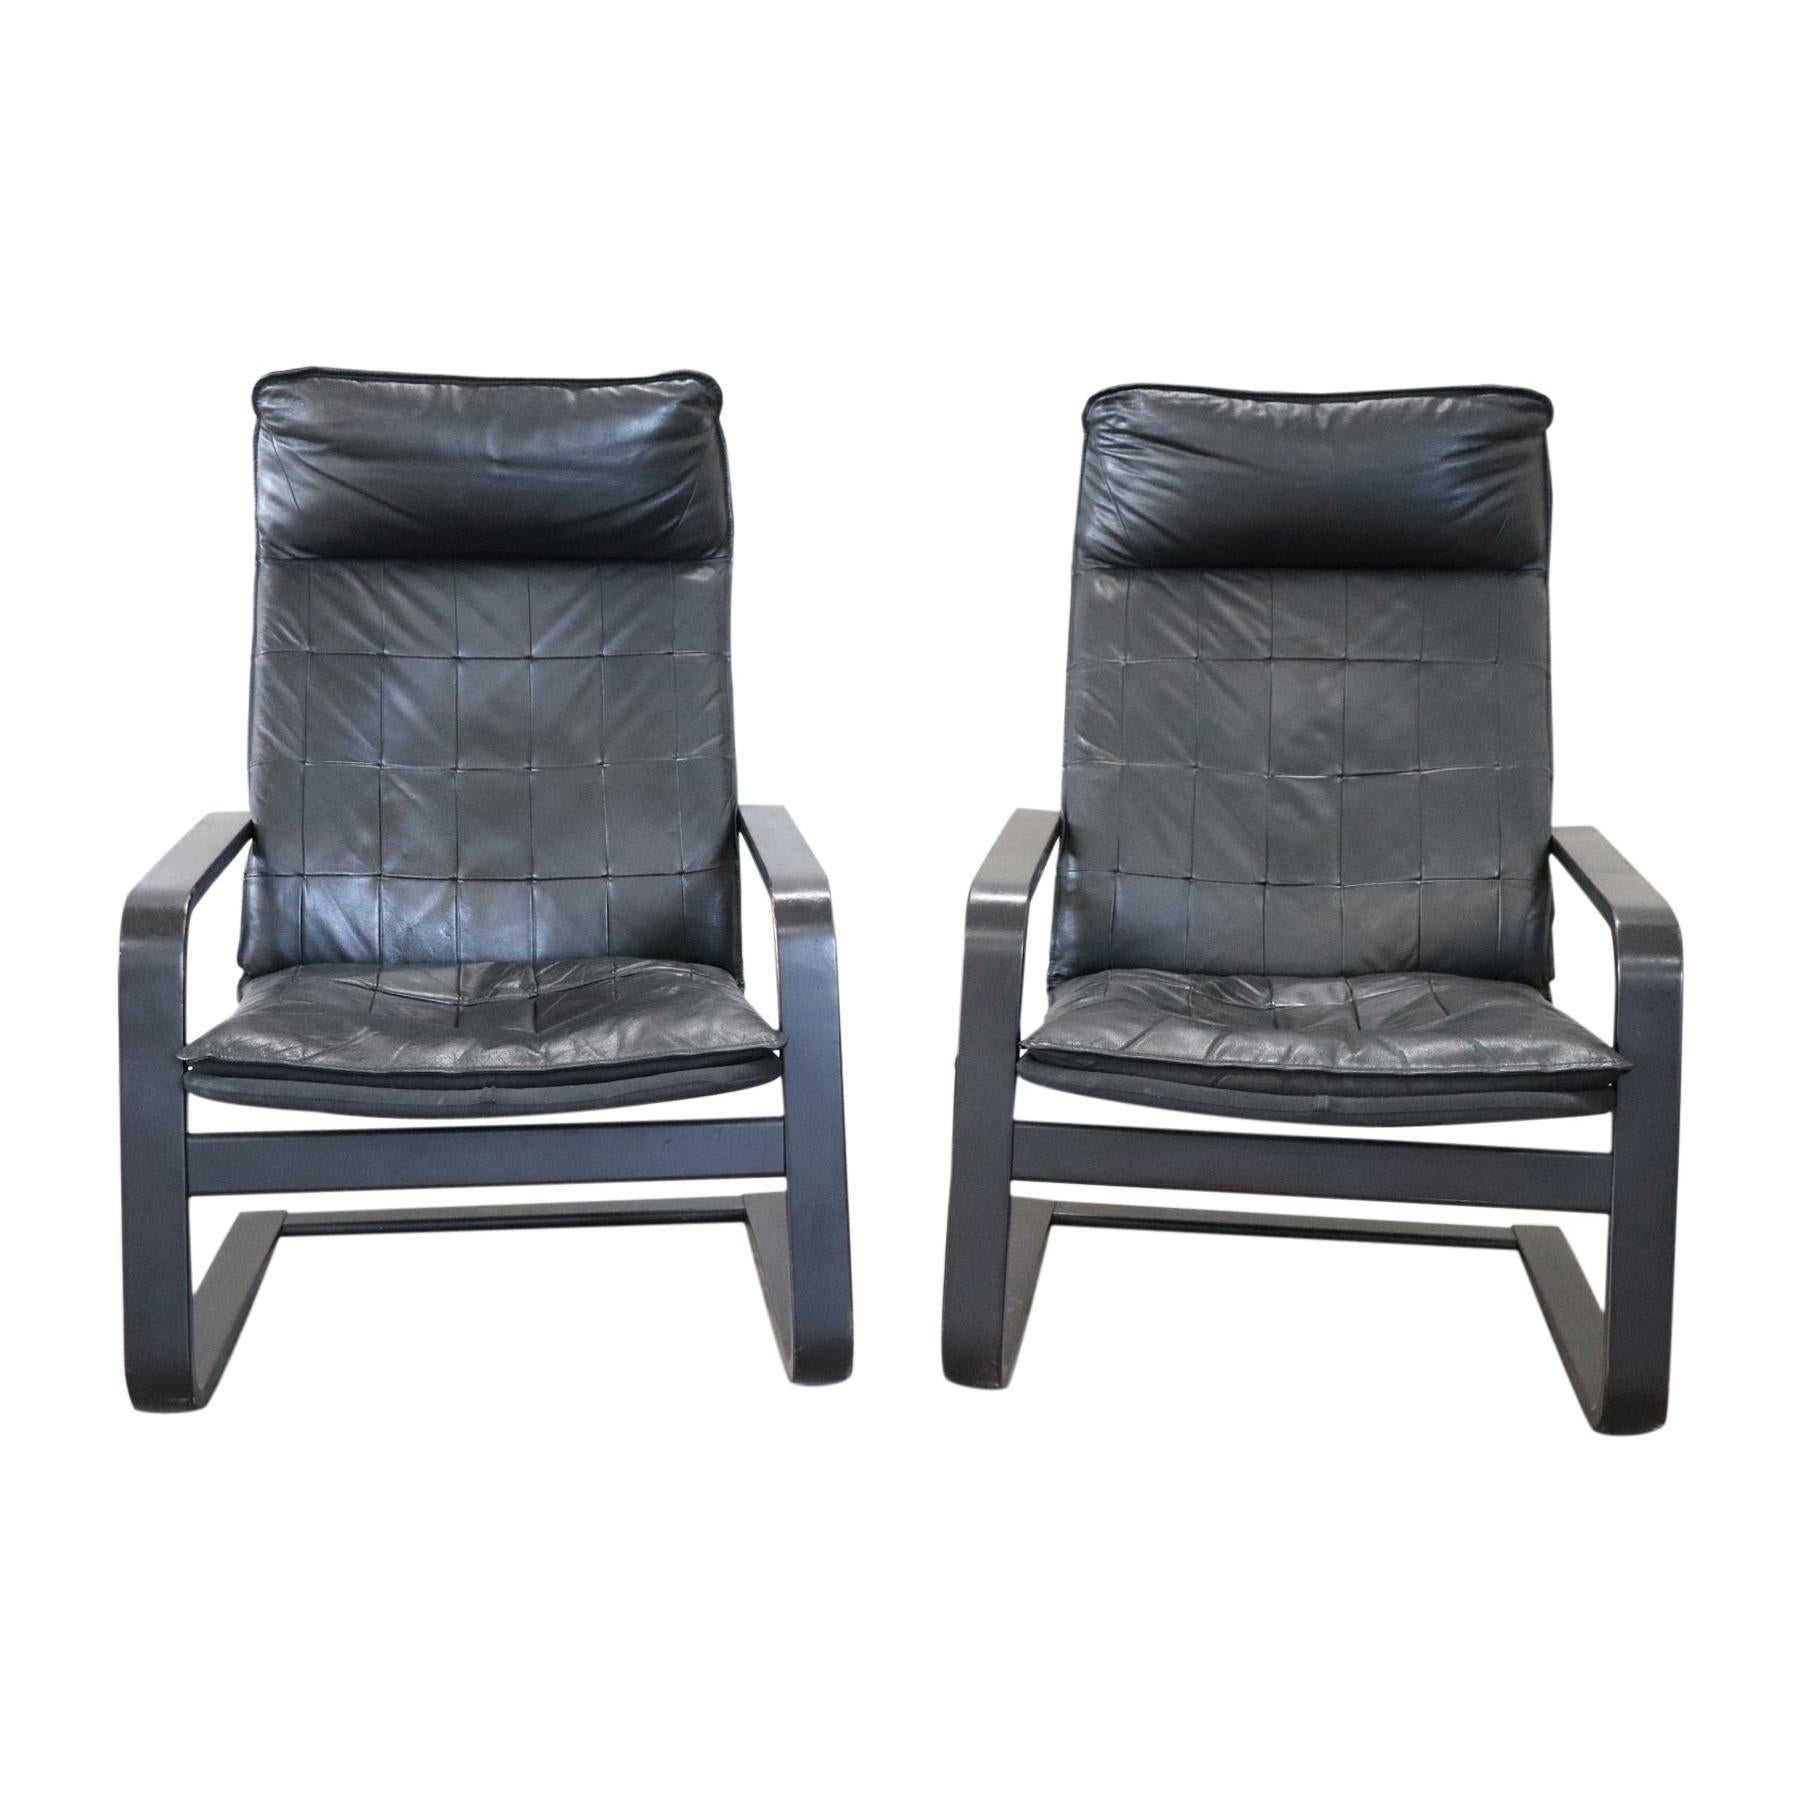 Pair of Lounge Chairs in Black Leather, 1970s